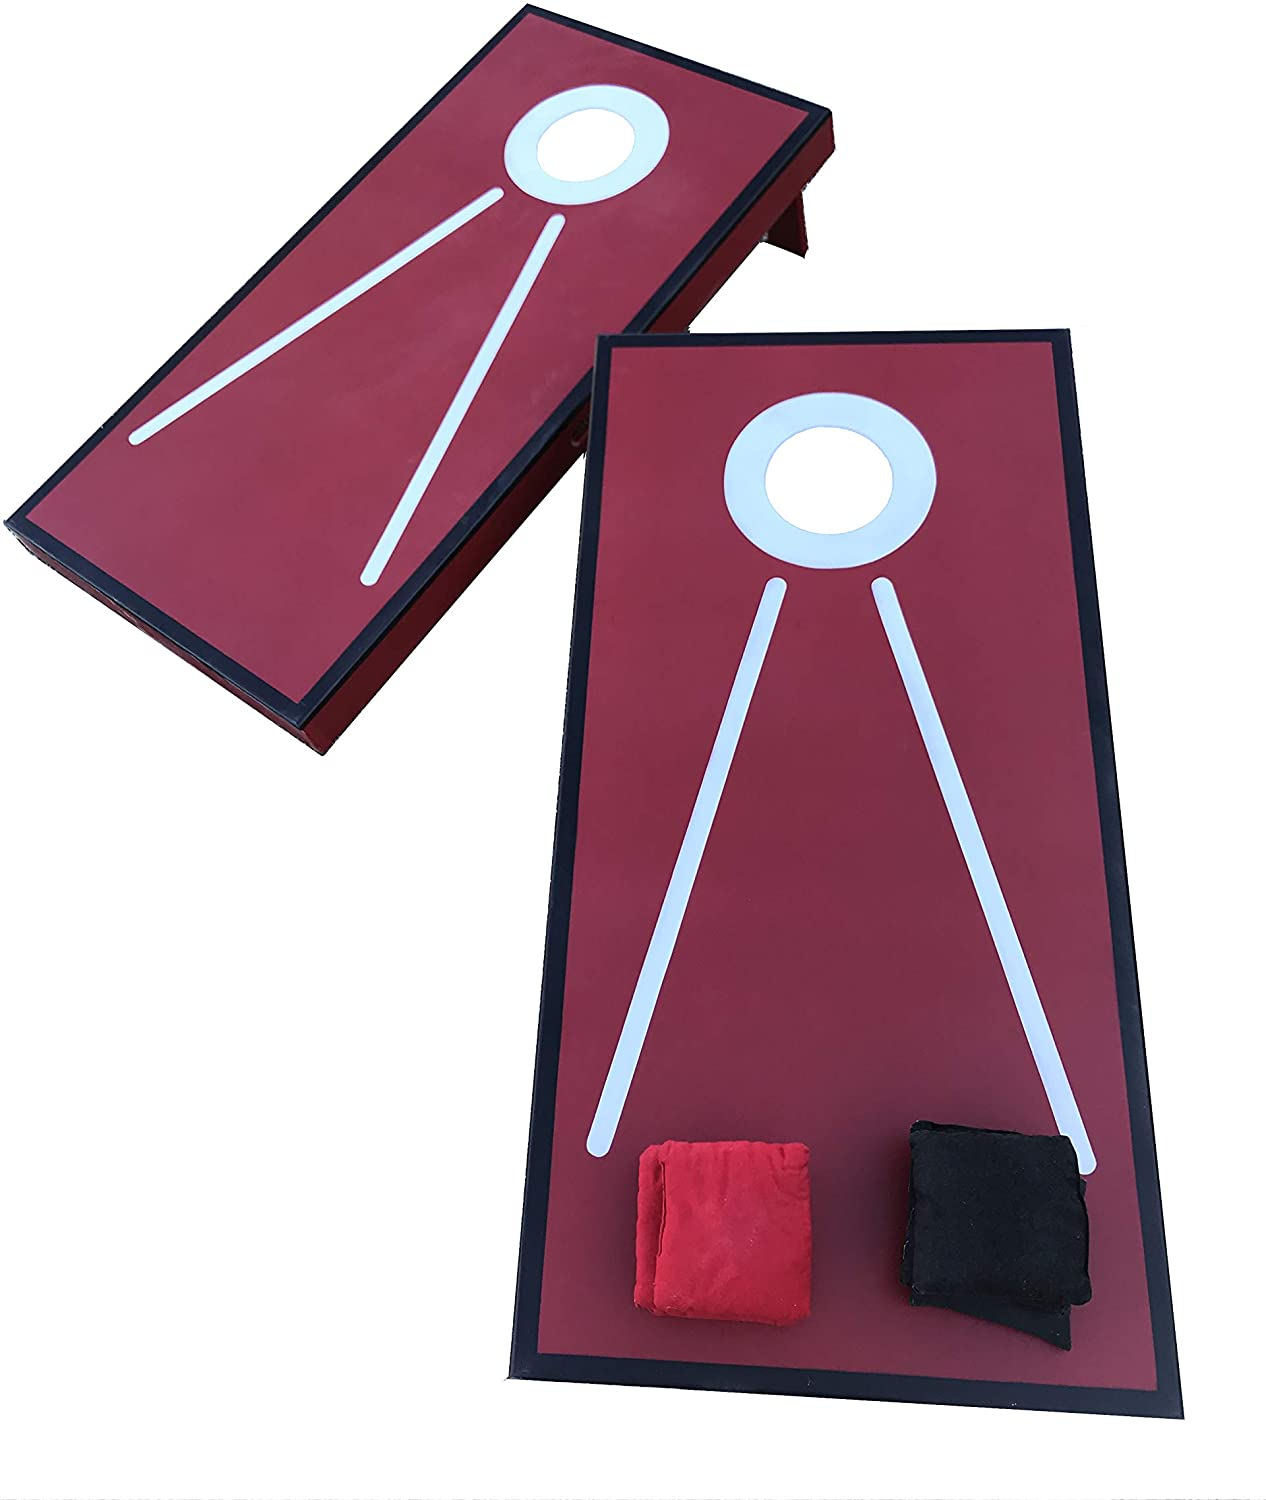 Beiler Custom Cabinets Premium Corn Hole Set, Durable Plywood Construction (Red and Black)